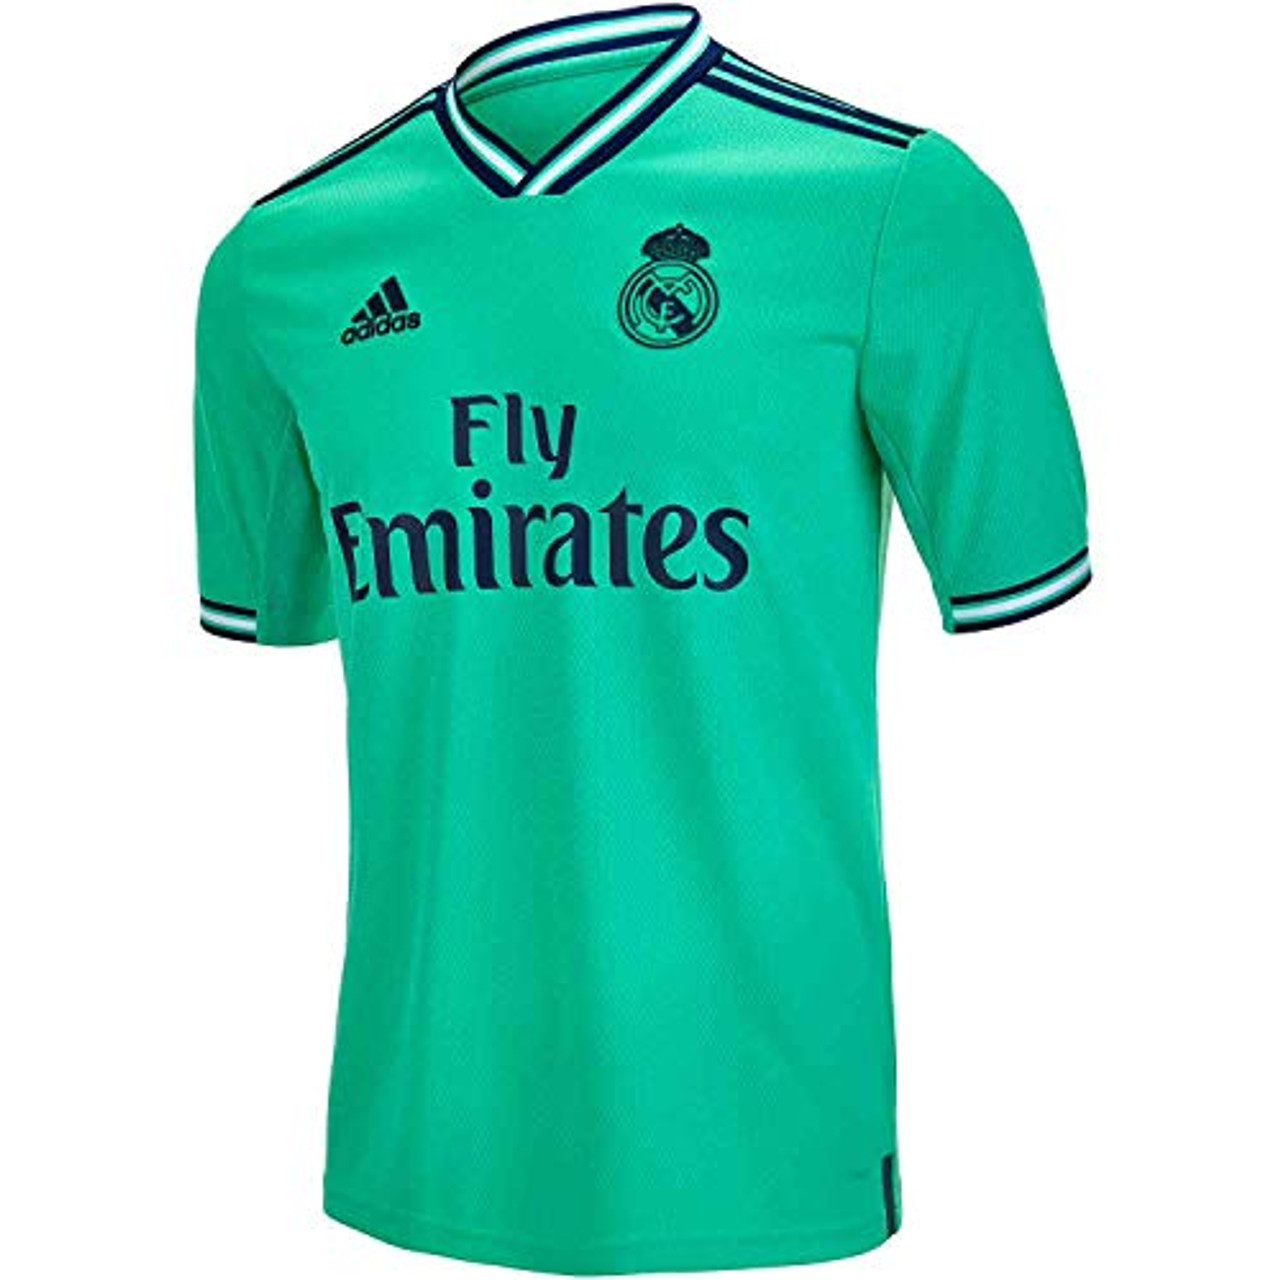 sports shoes e1977 b036d ADIDAS REAL MADRID 2020 3RD JERSEY MINT GREEN